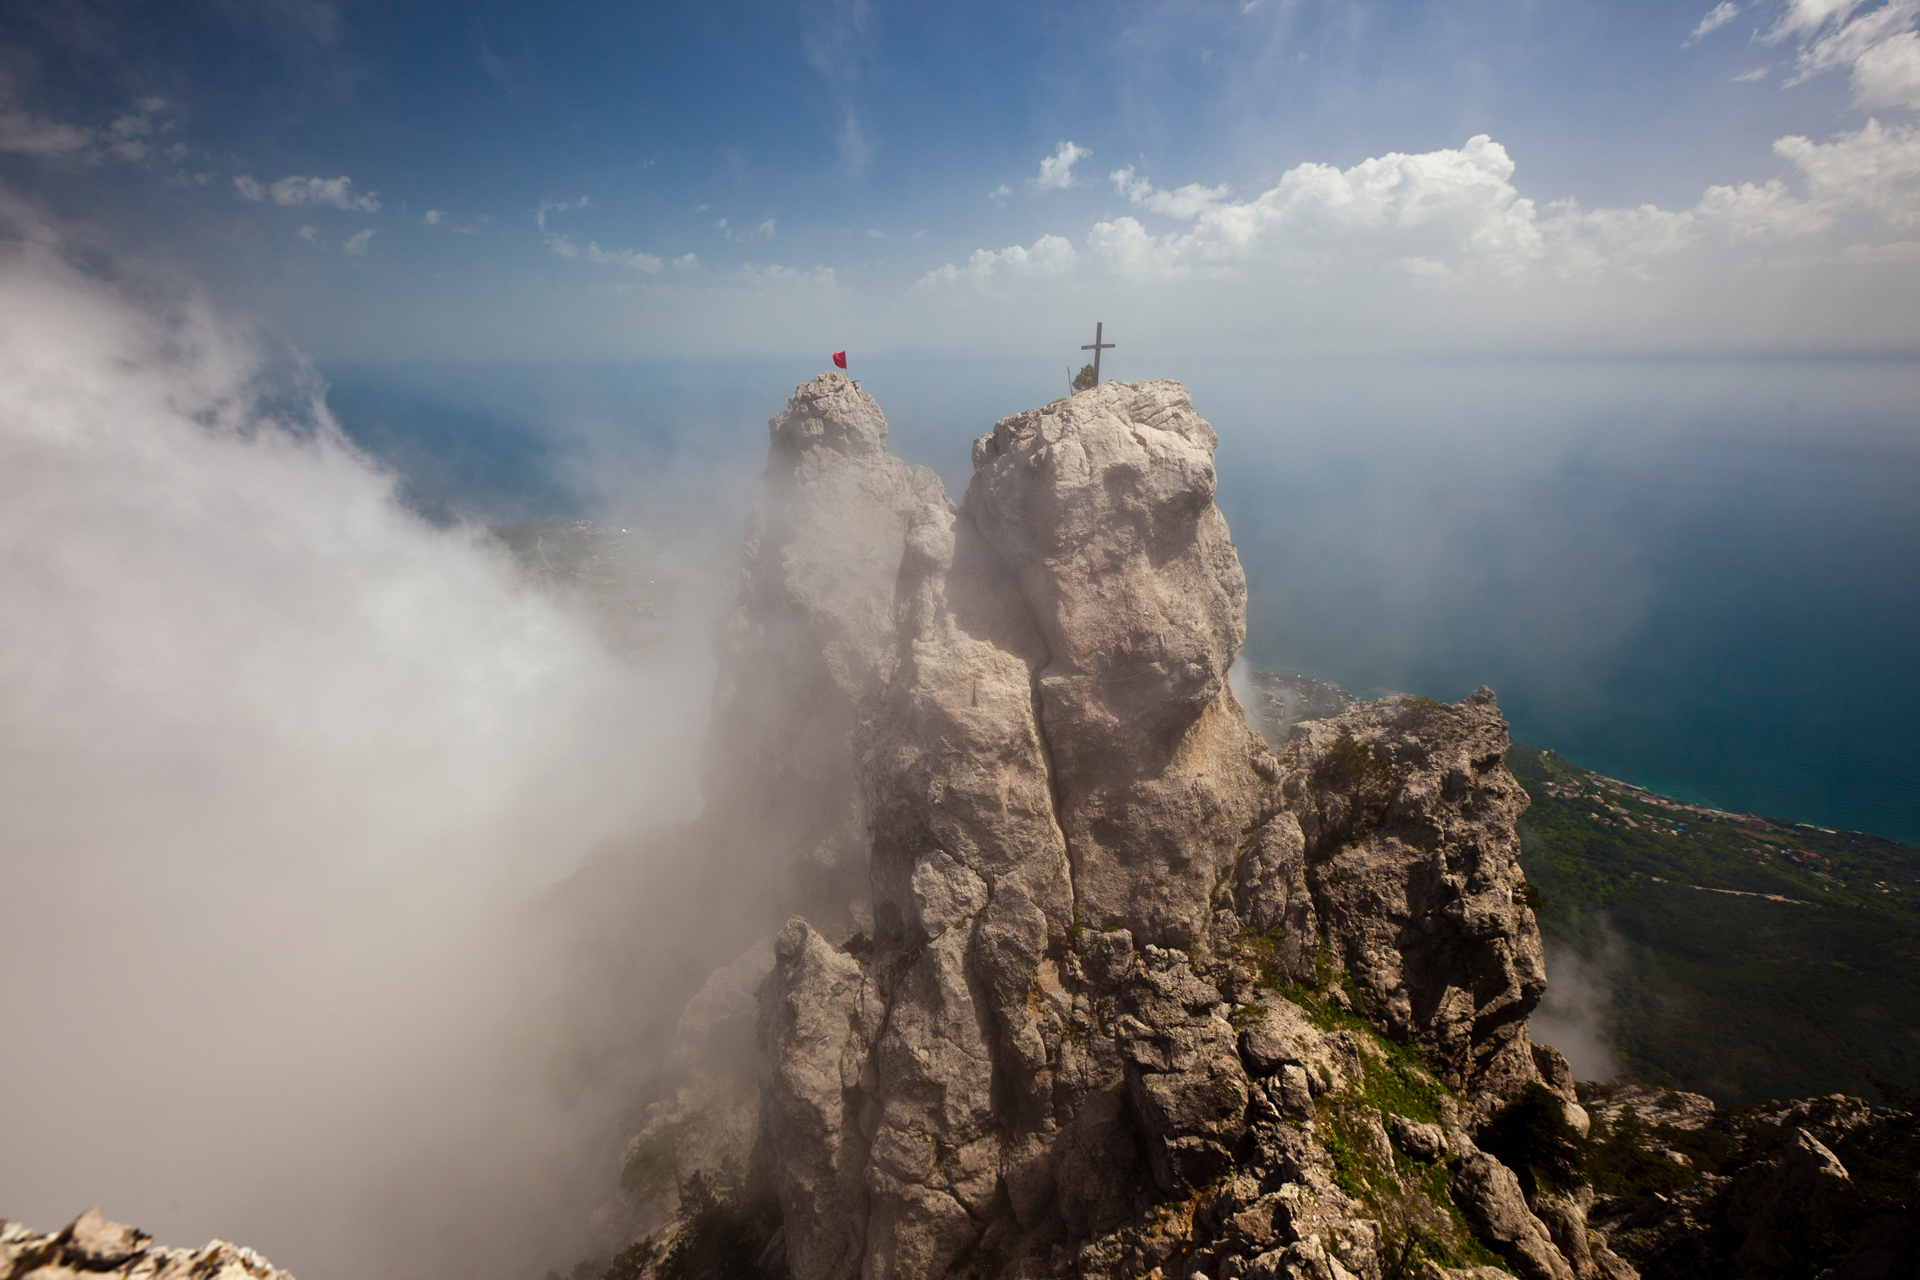 At 1,234m, Ai-Petri is not the highest mountain in Crimea. But it's certainly one of the most spectacular, with its sparkling white limestone peak and its jagged `teeth'.  Miskhor, Crimea